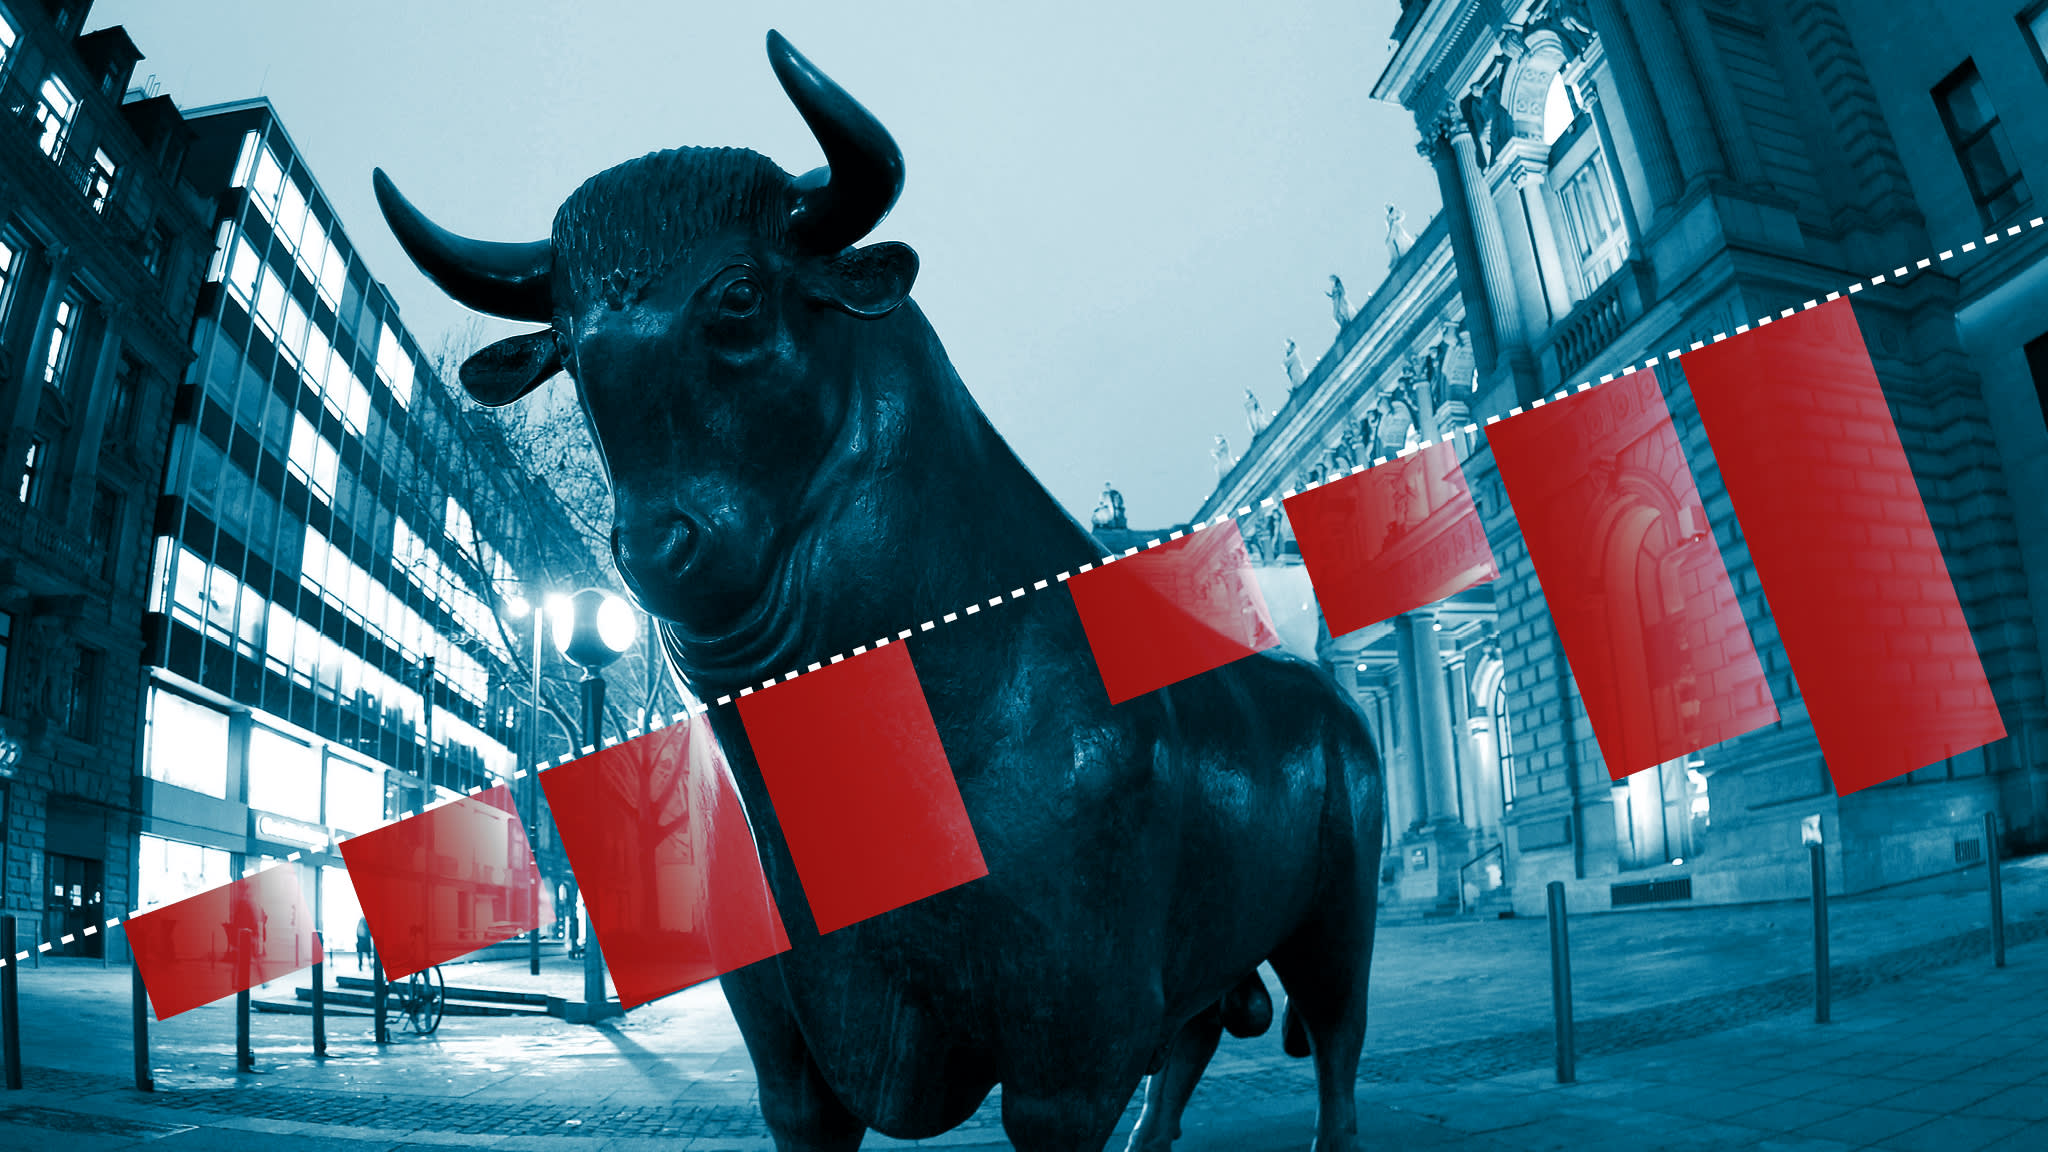 Equities and commodities decline as risk appetite weakens